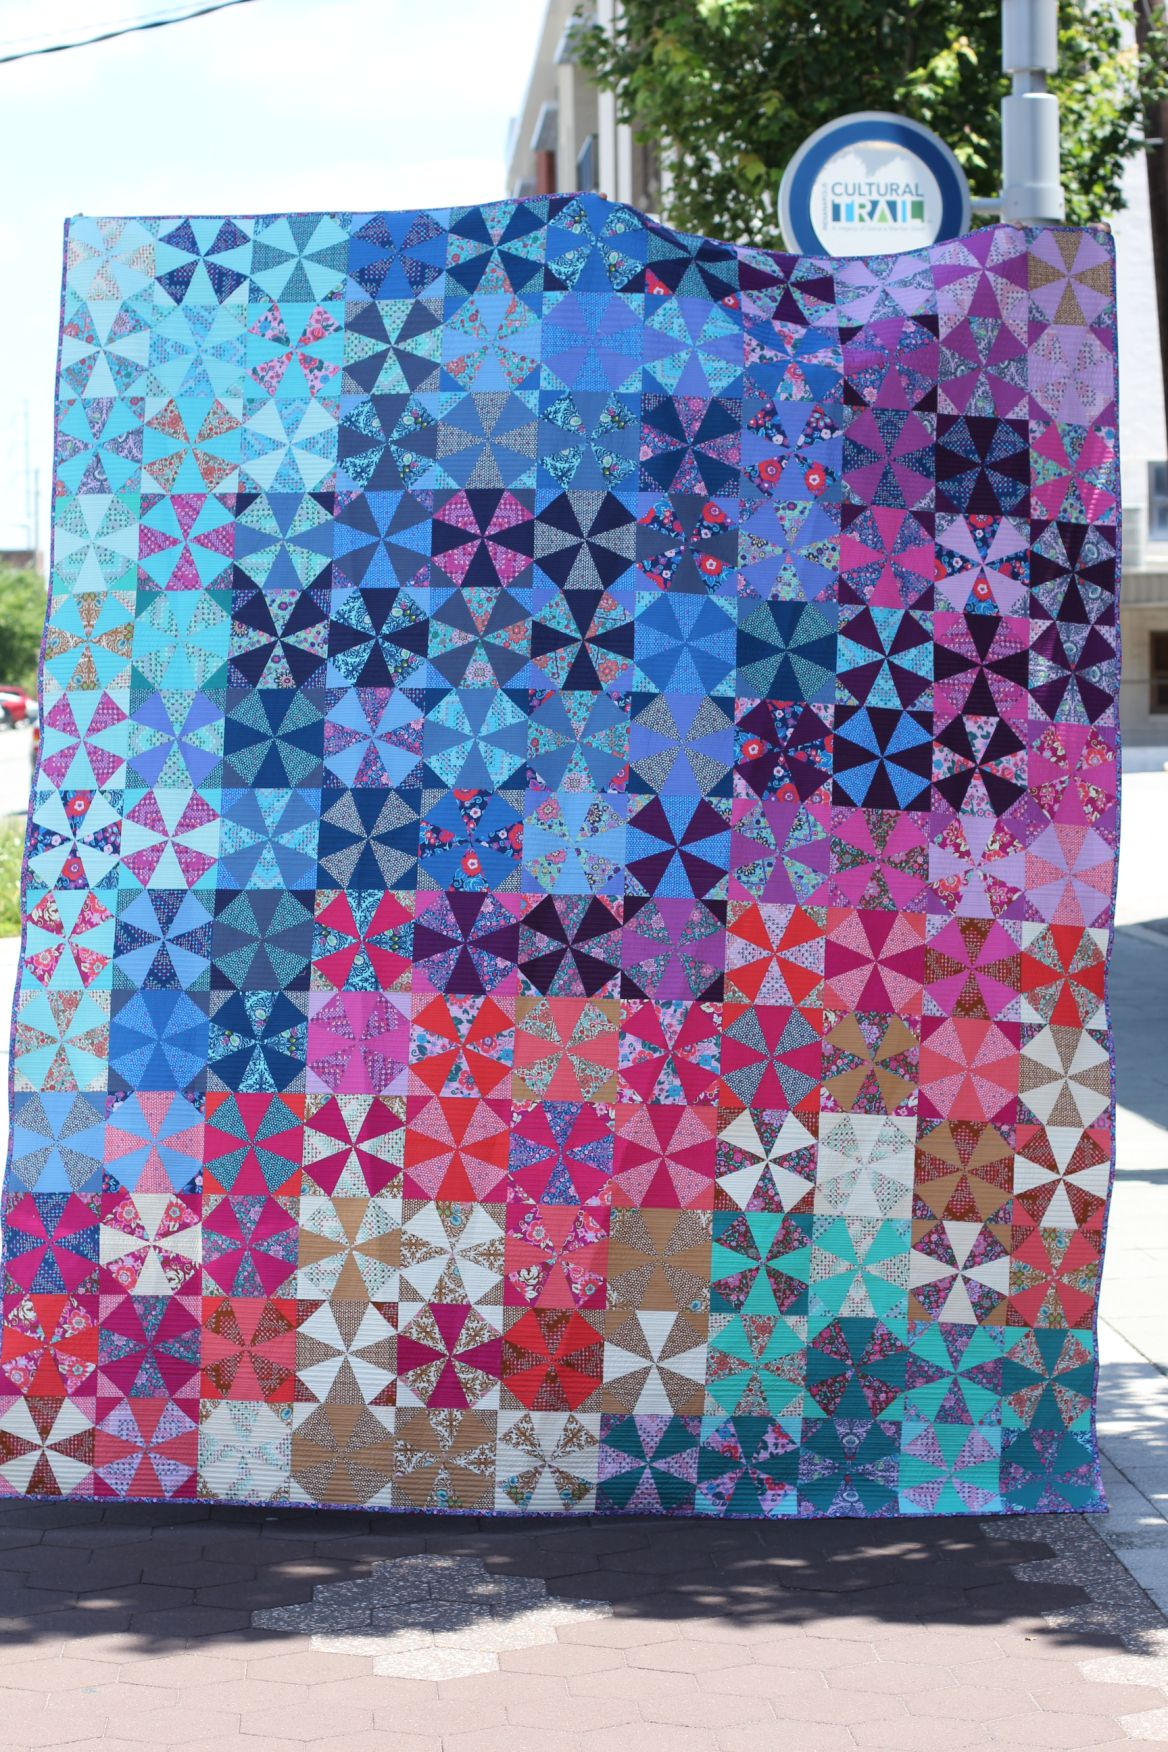 Pin by Courtney Bender on Quilting Pinterest